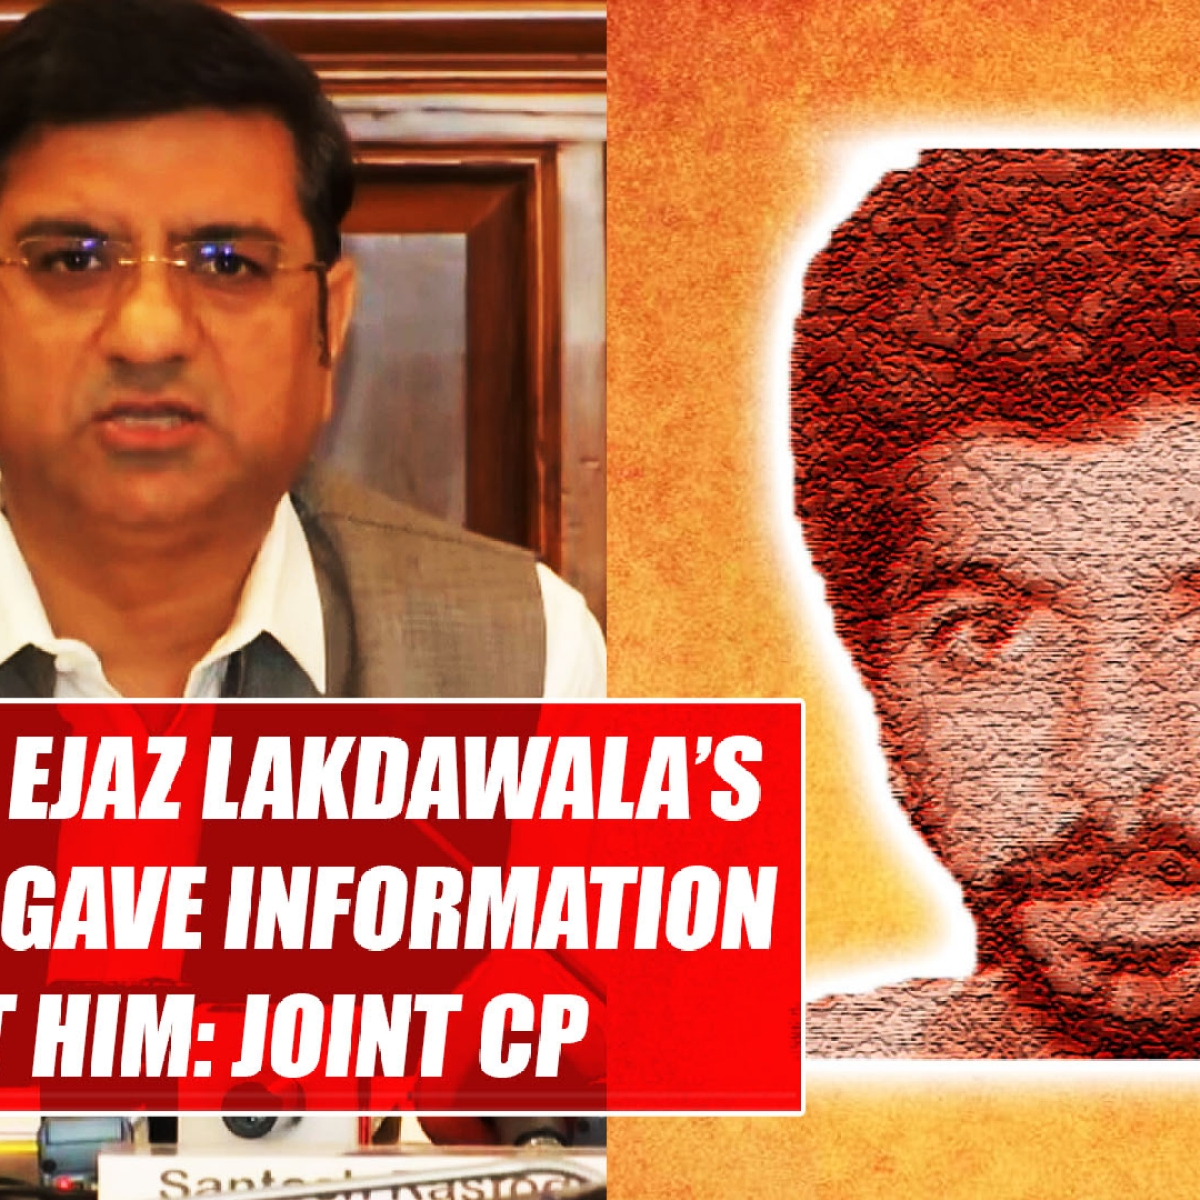 Underworld Don Ejaz Lakdawala's daughter gave information about him: Joint CP of Mumbai Police